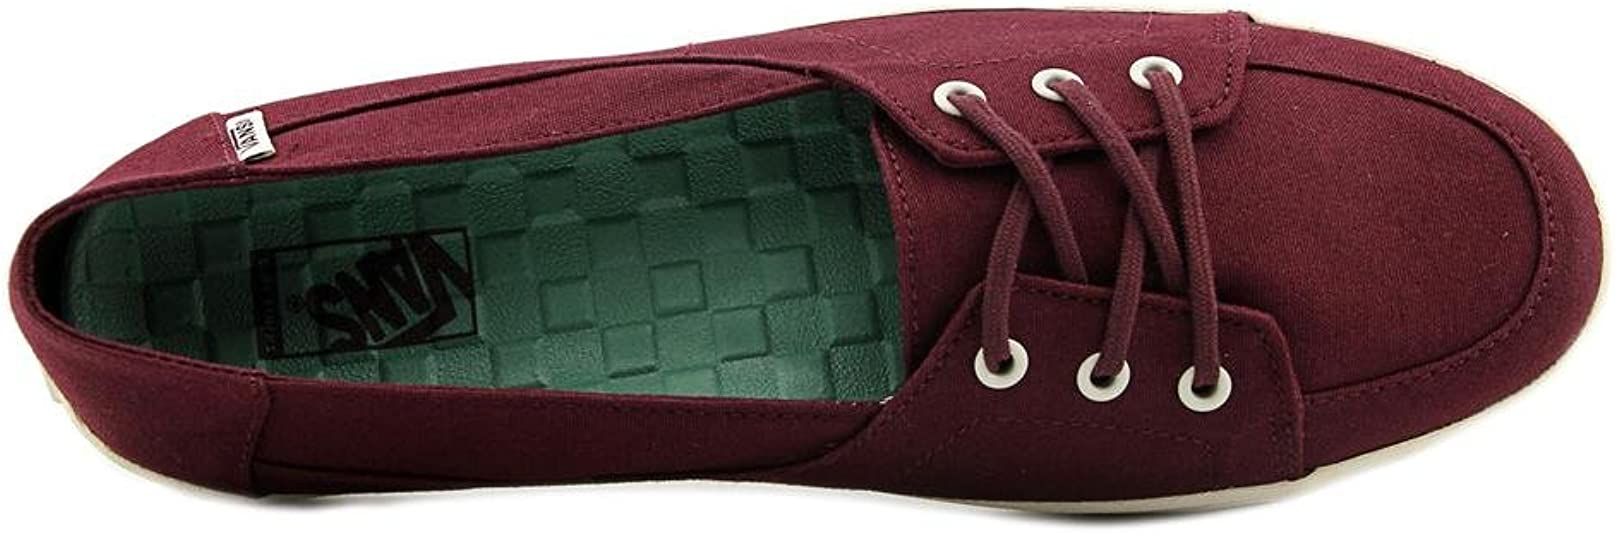 Vans Palisades Vulc Windsor Wine